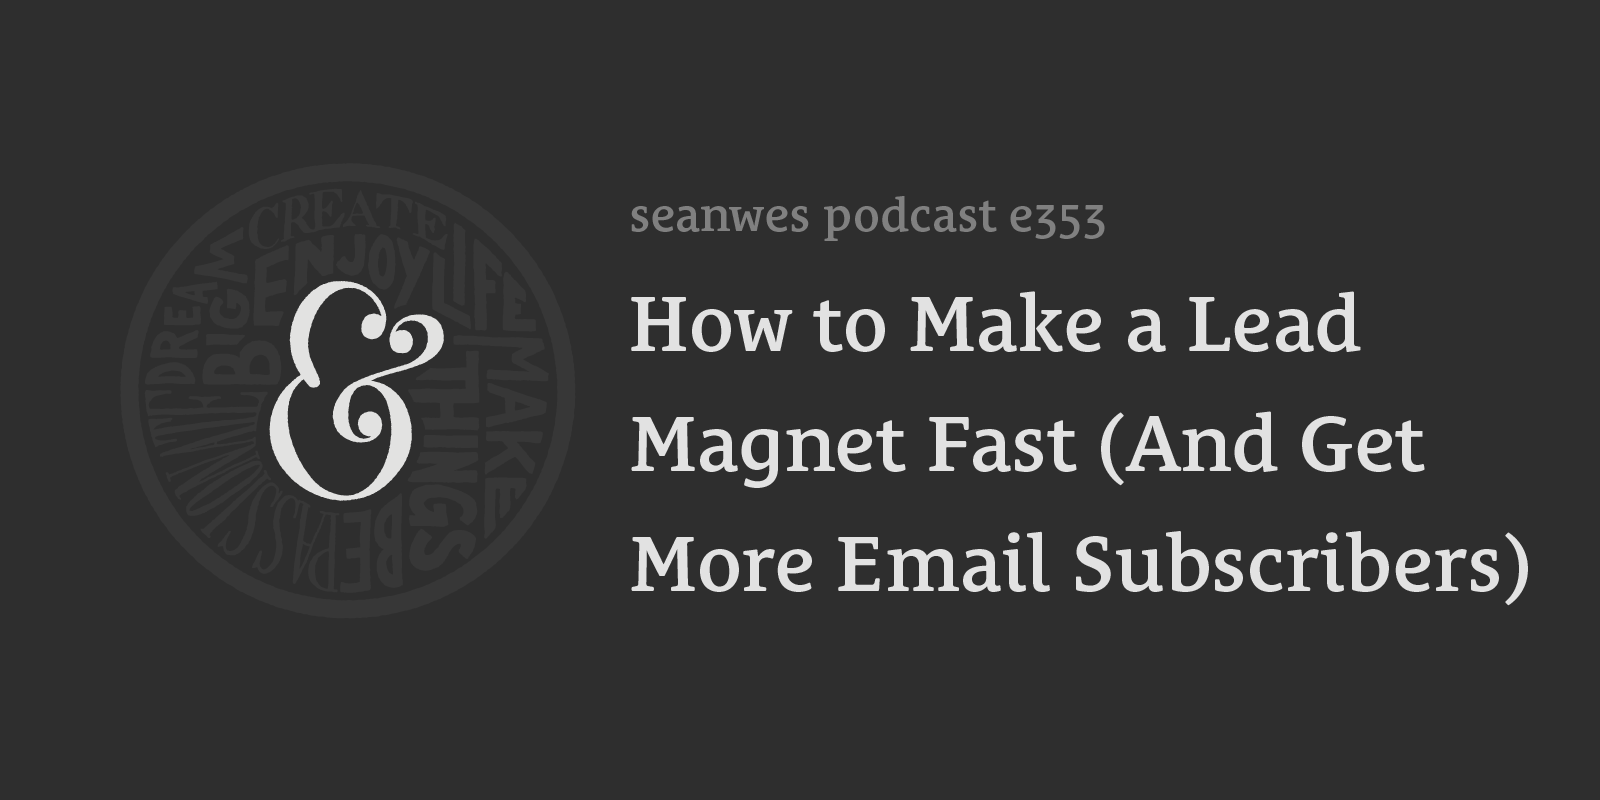 How to Make a Lead Magnet Fast (And Get More Email Subscribers)